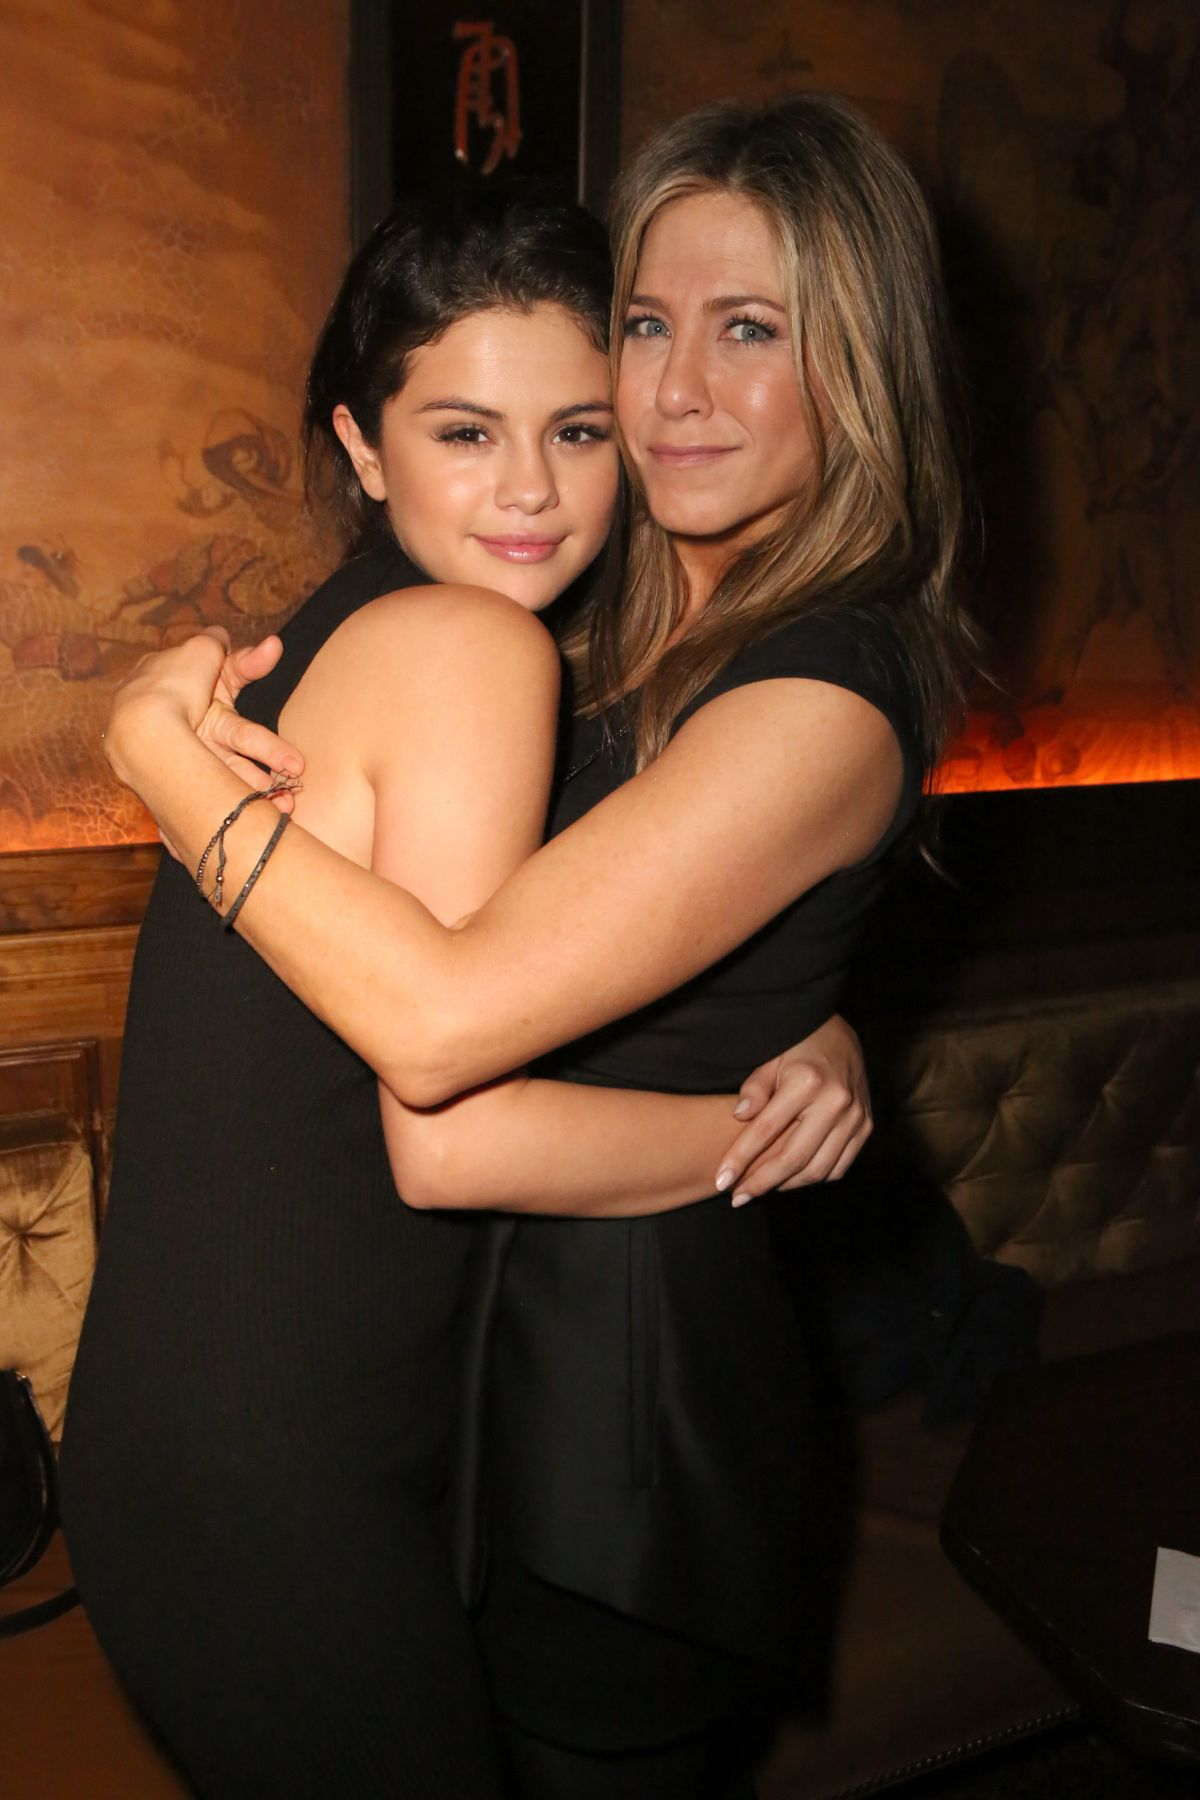 SELENA GOMEZ and JENNIFER ANISTON at Cake Party for Jennifer Aniston in Hollywood